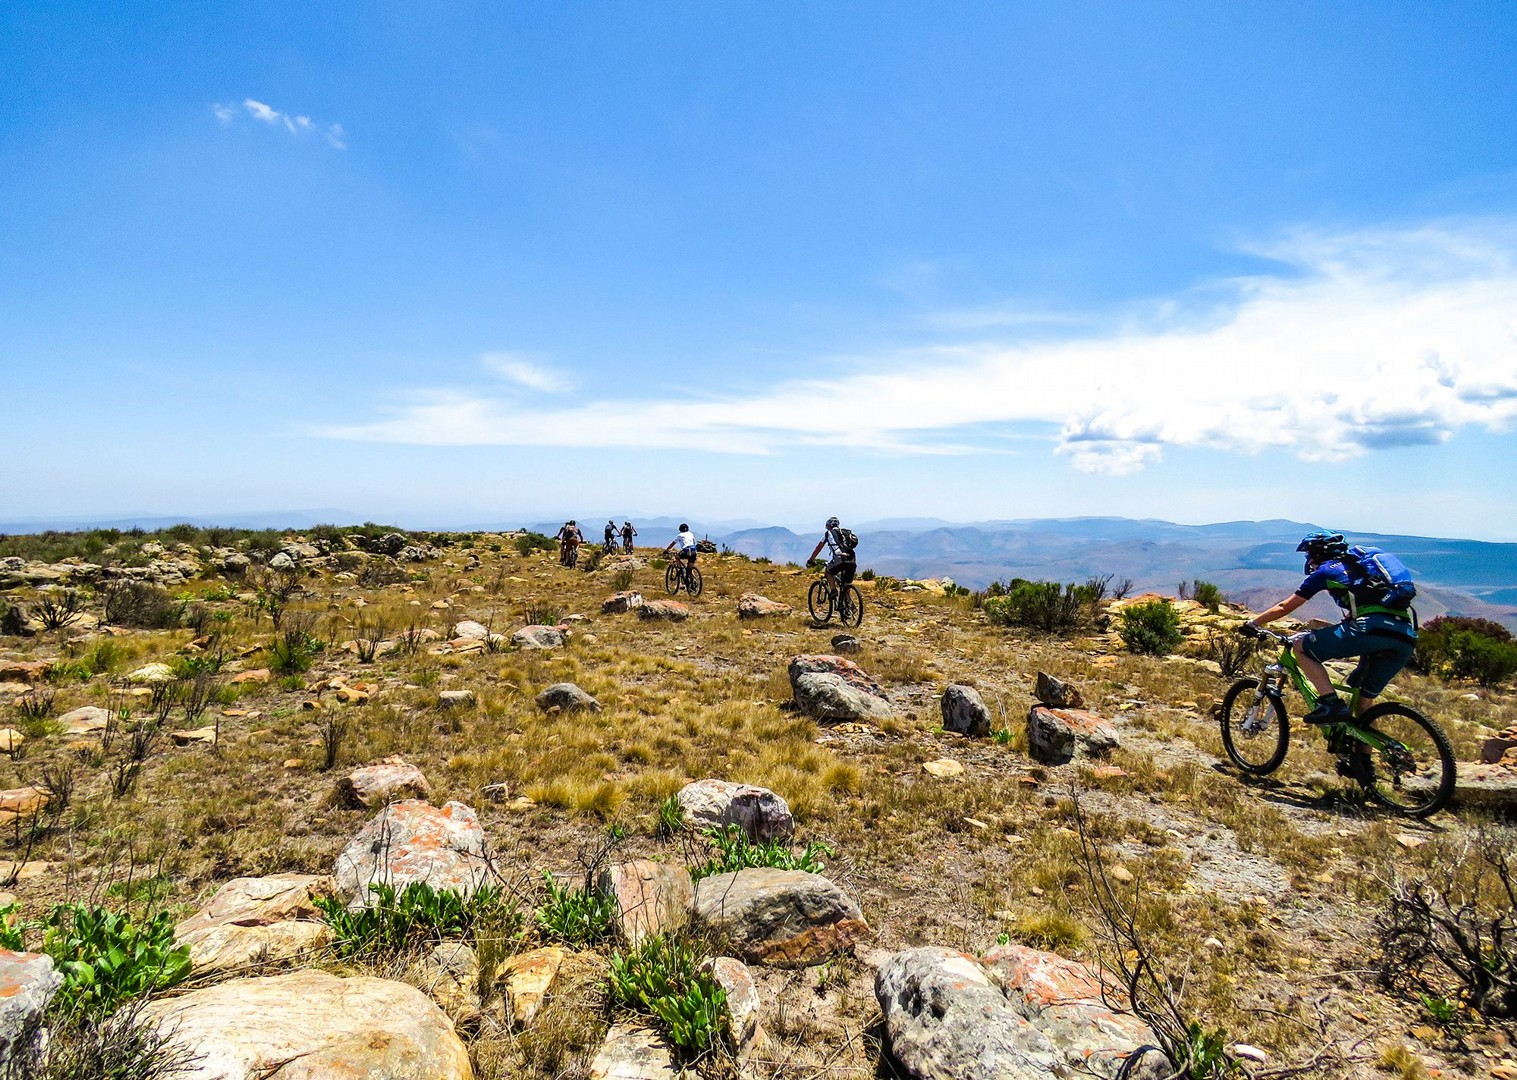 rocky-terrain-mountain-biking-south-africa-guided-holiday.jpg - NEW! South Africa and Botswana - Mountain Biking